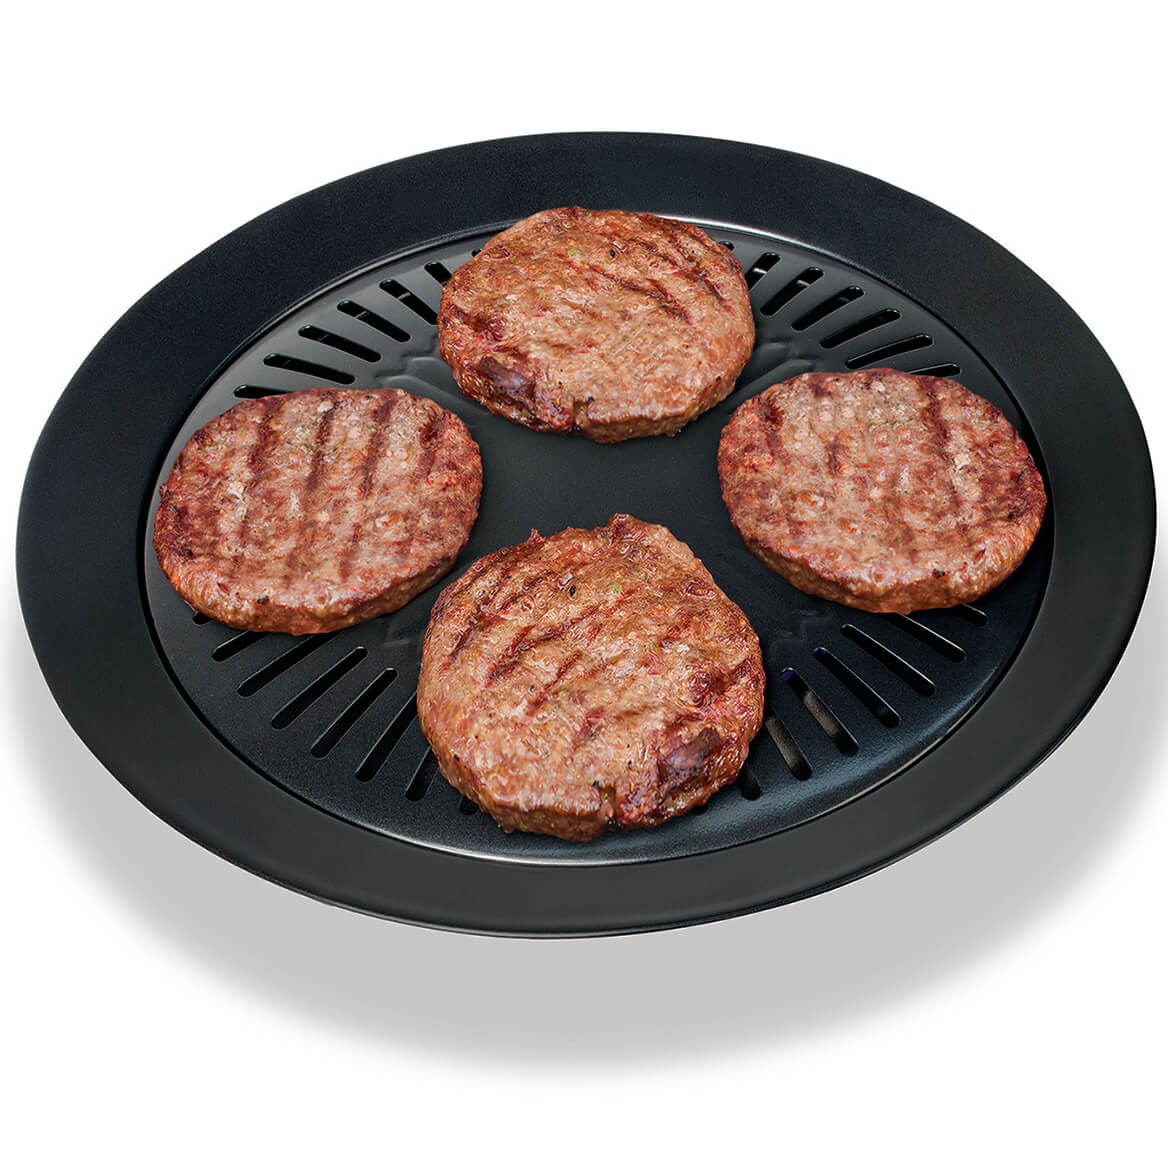 Stove Top Grill-356133